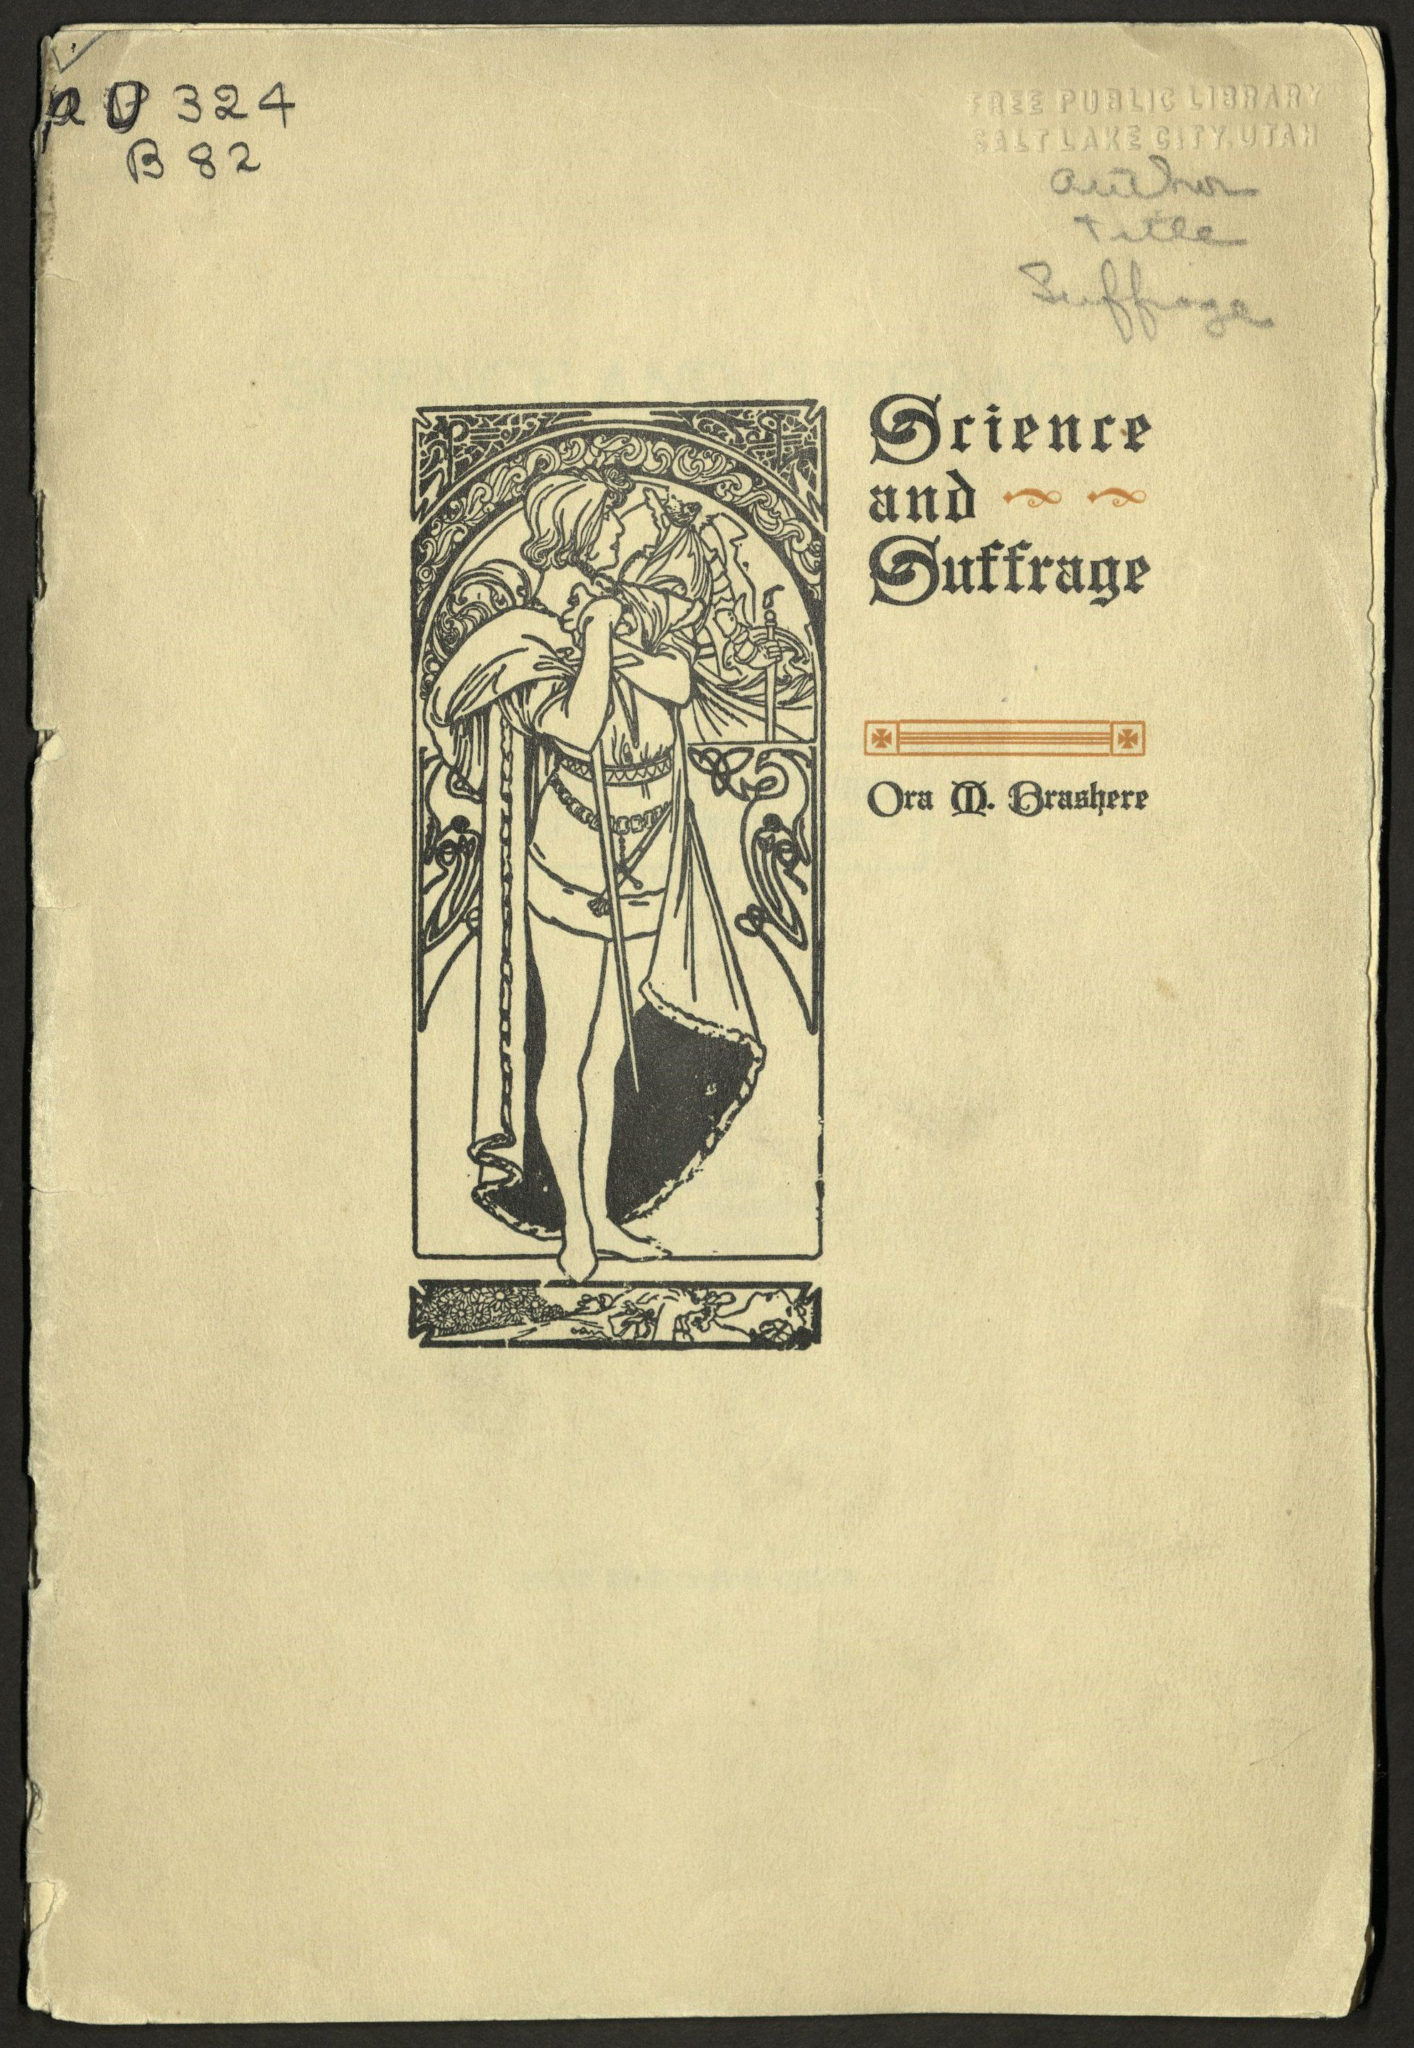 front cover with image, title, and author